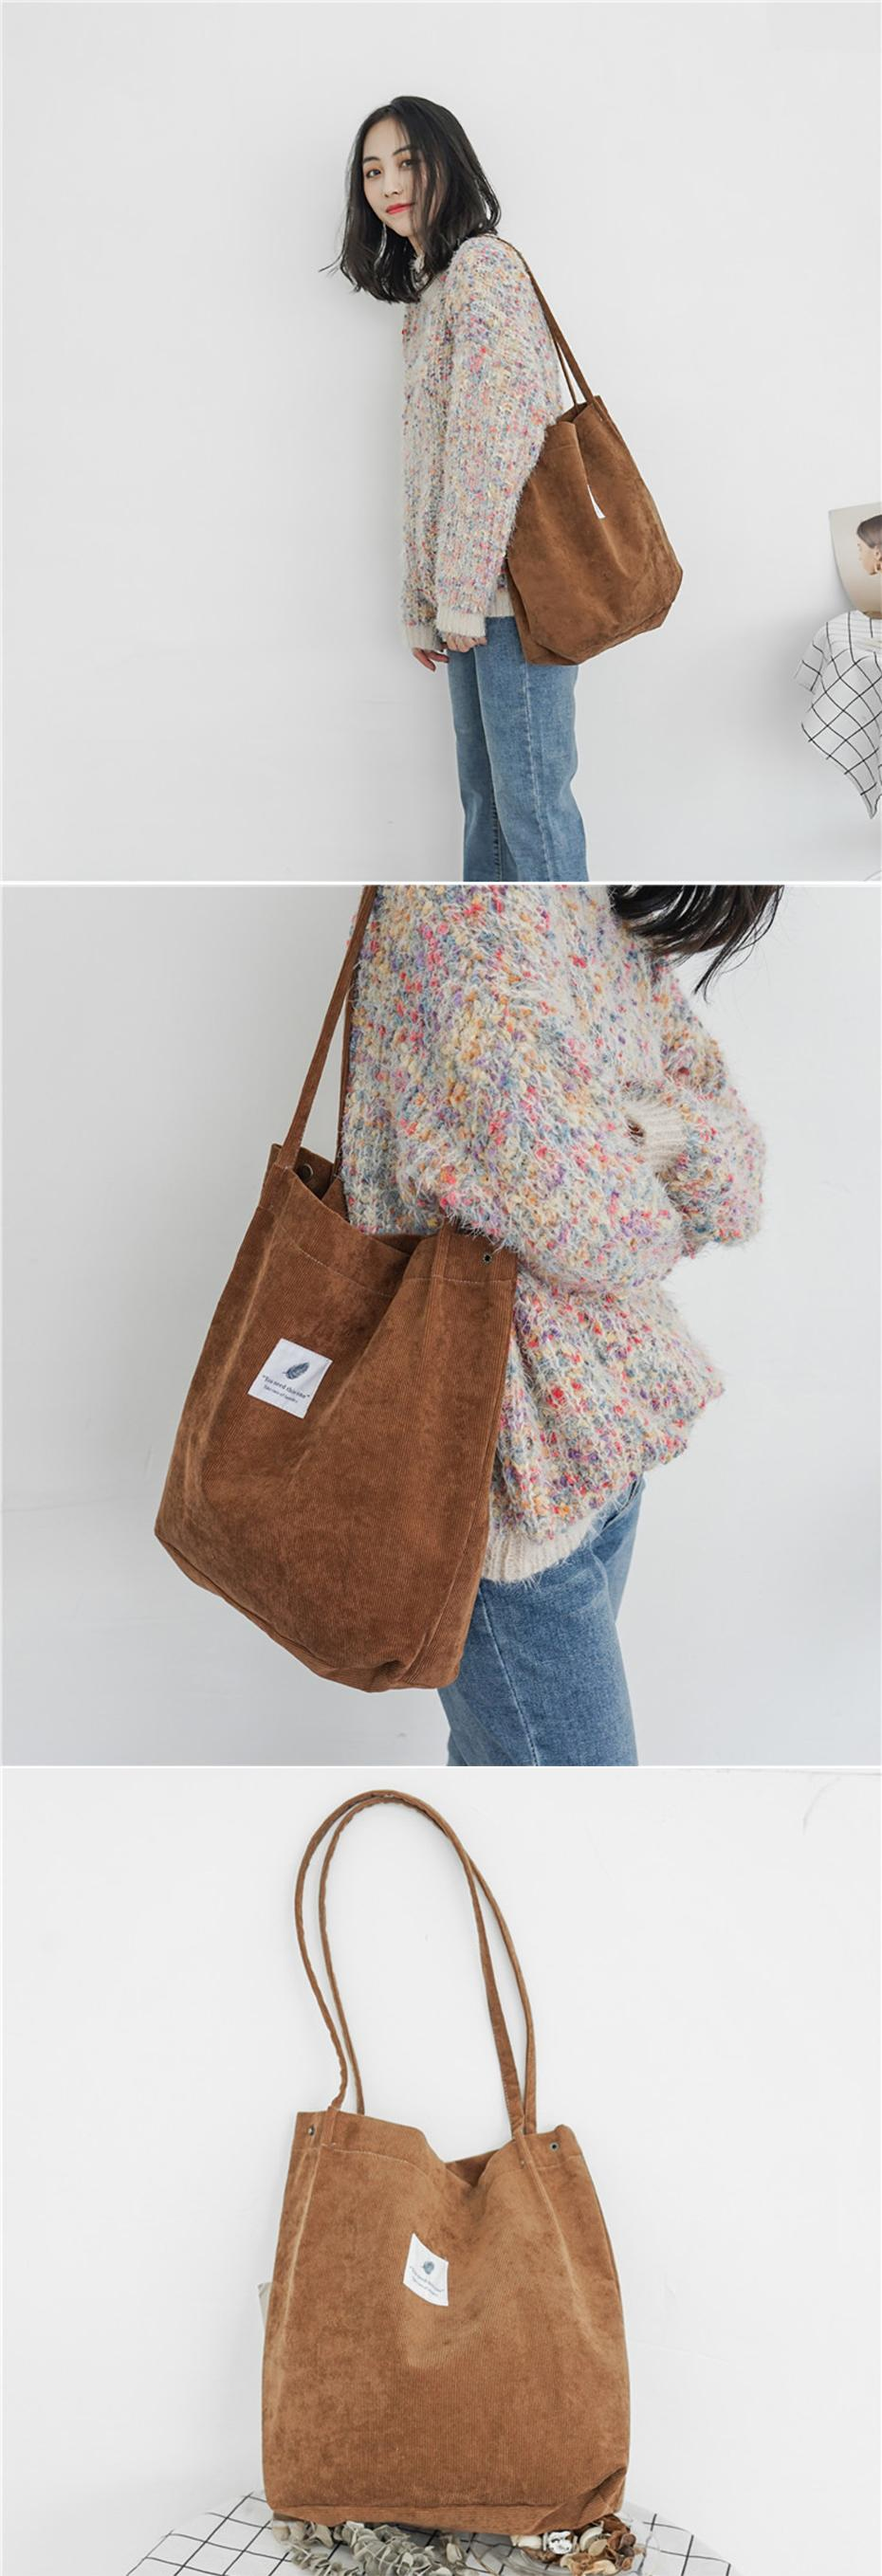 High Quality Women Corduroy Tote Ladies Casual Shoulder Bag Large Capacity Shopping Beach Bag Foldable Reusable